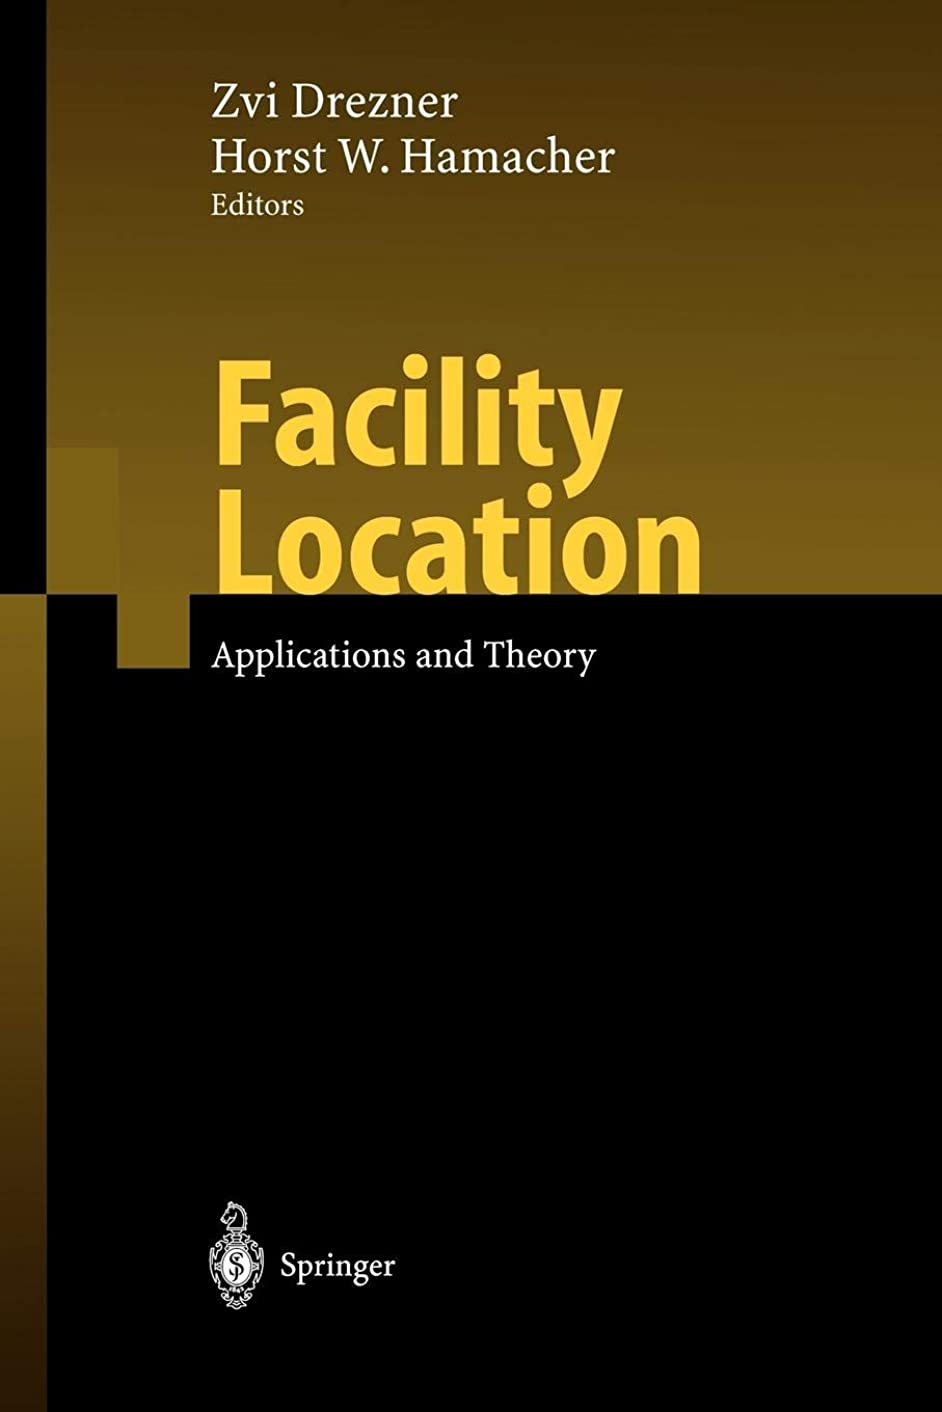 摂氏度説明大工Facility Location: Applications and Theory